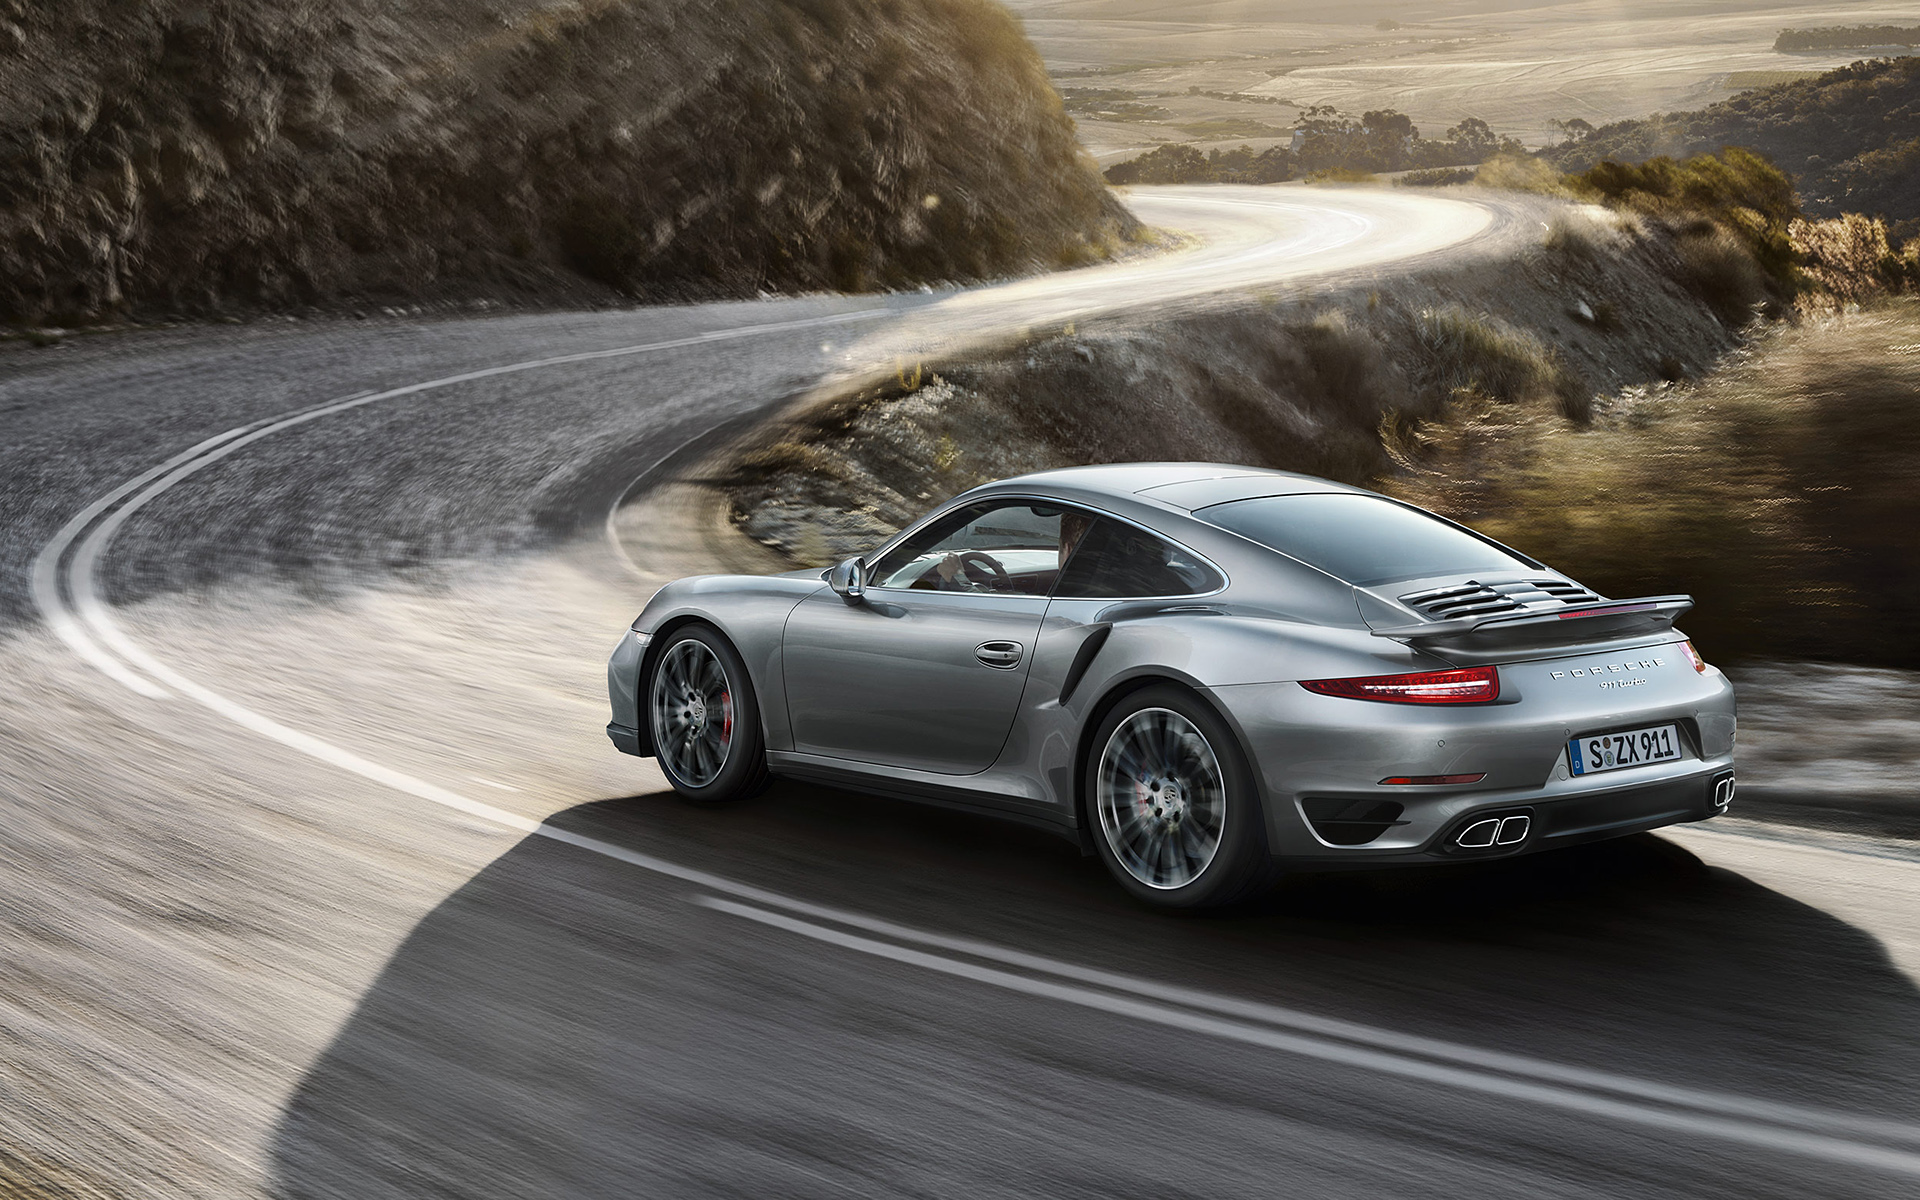 2014 porsche 911 turbo wallpaper hd